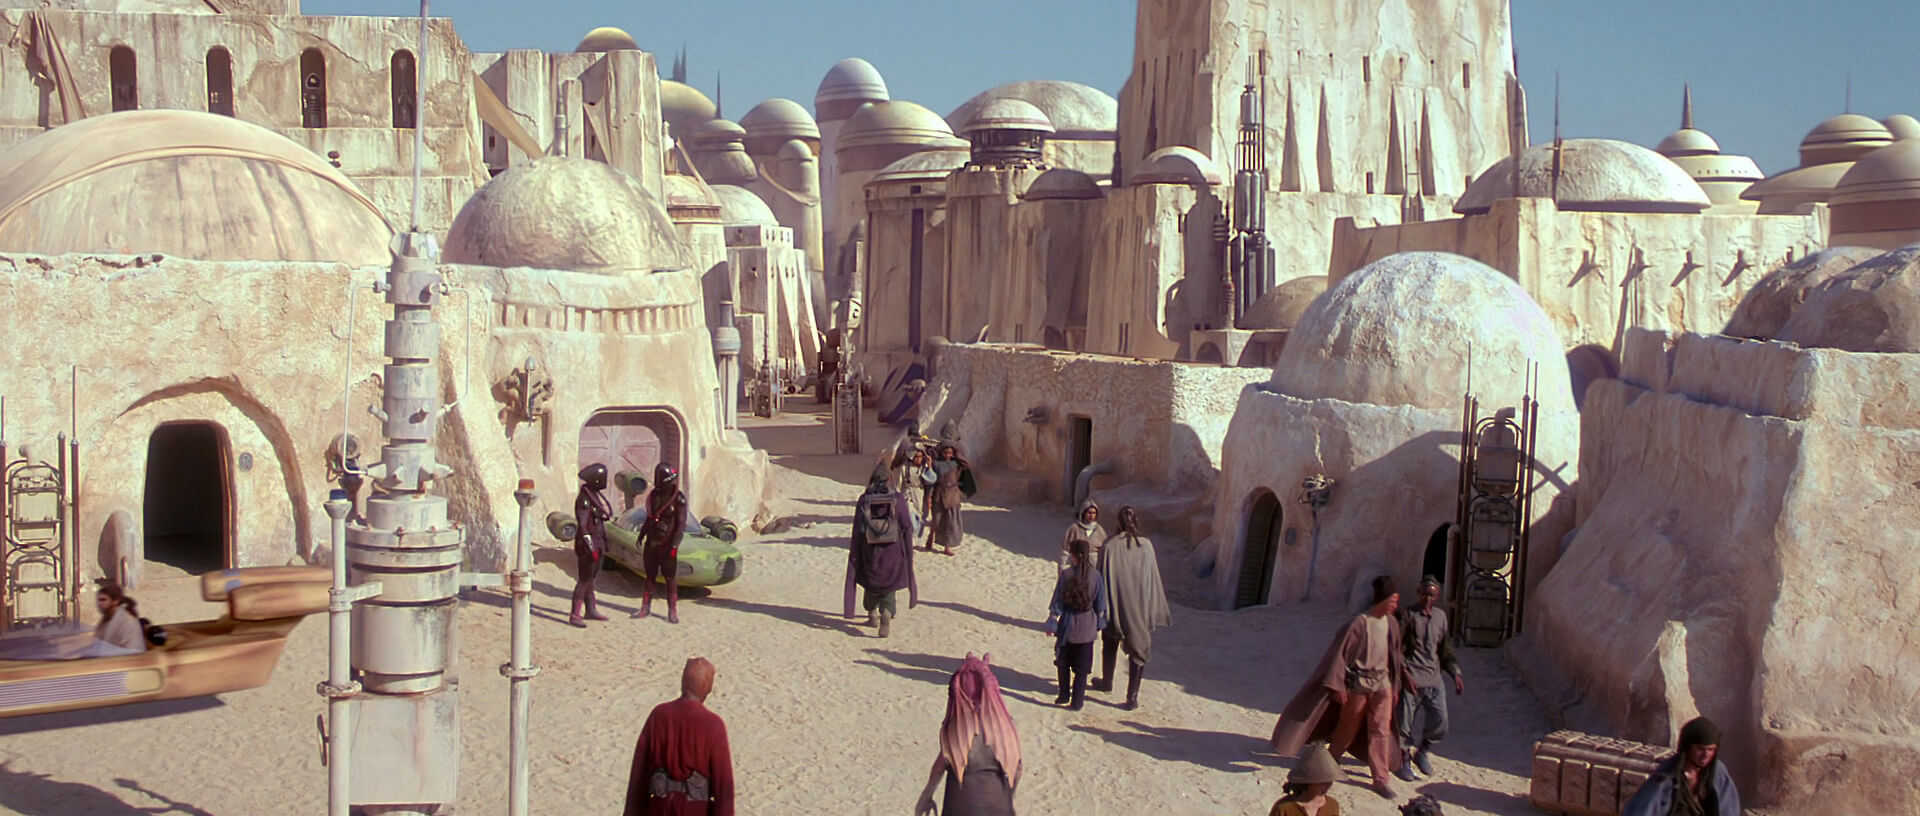 The ruins of Tunisia, as seen in a Star Wars movie | Yeezy Home by Kanye West | STIRworld